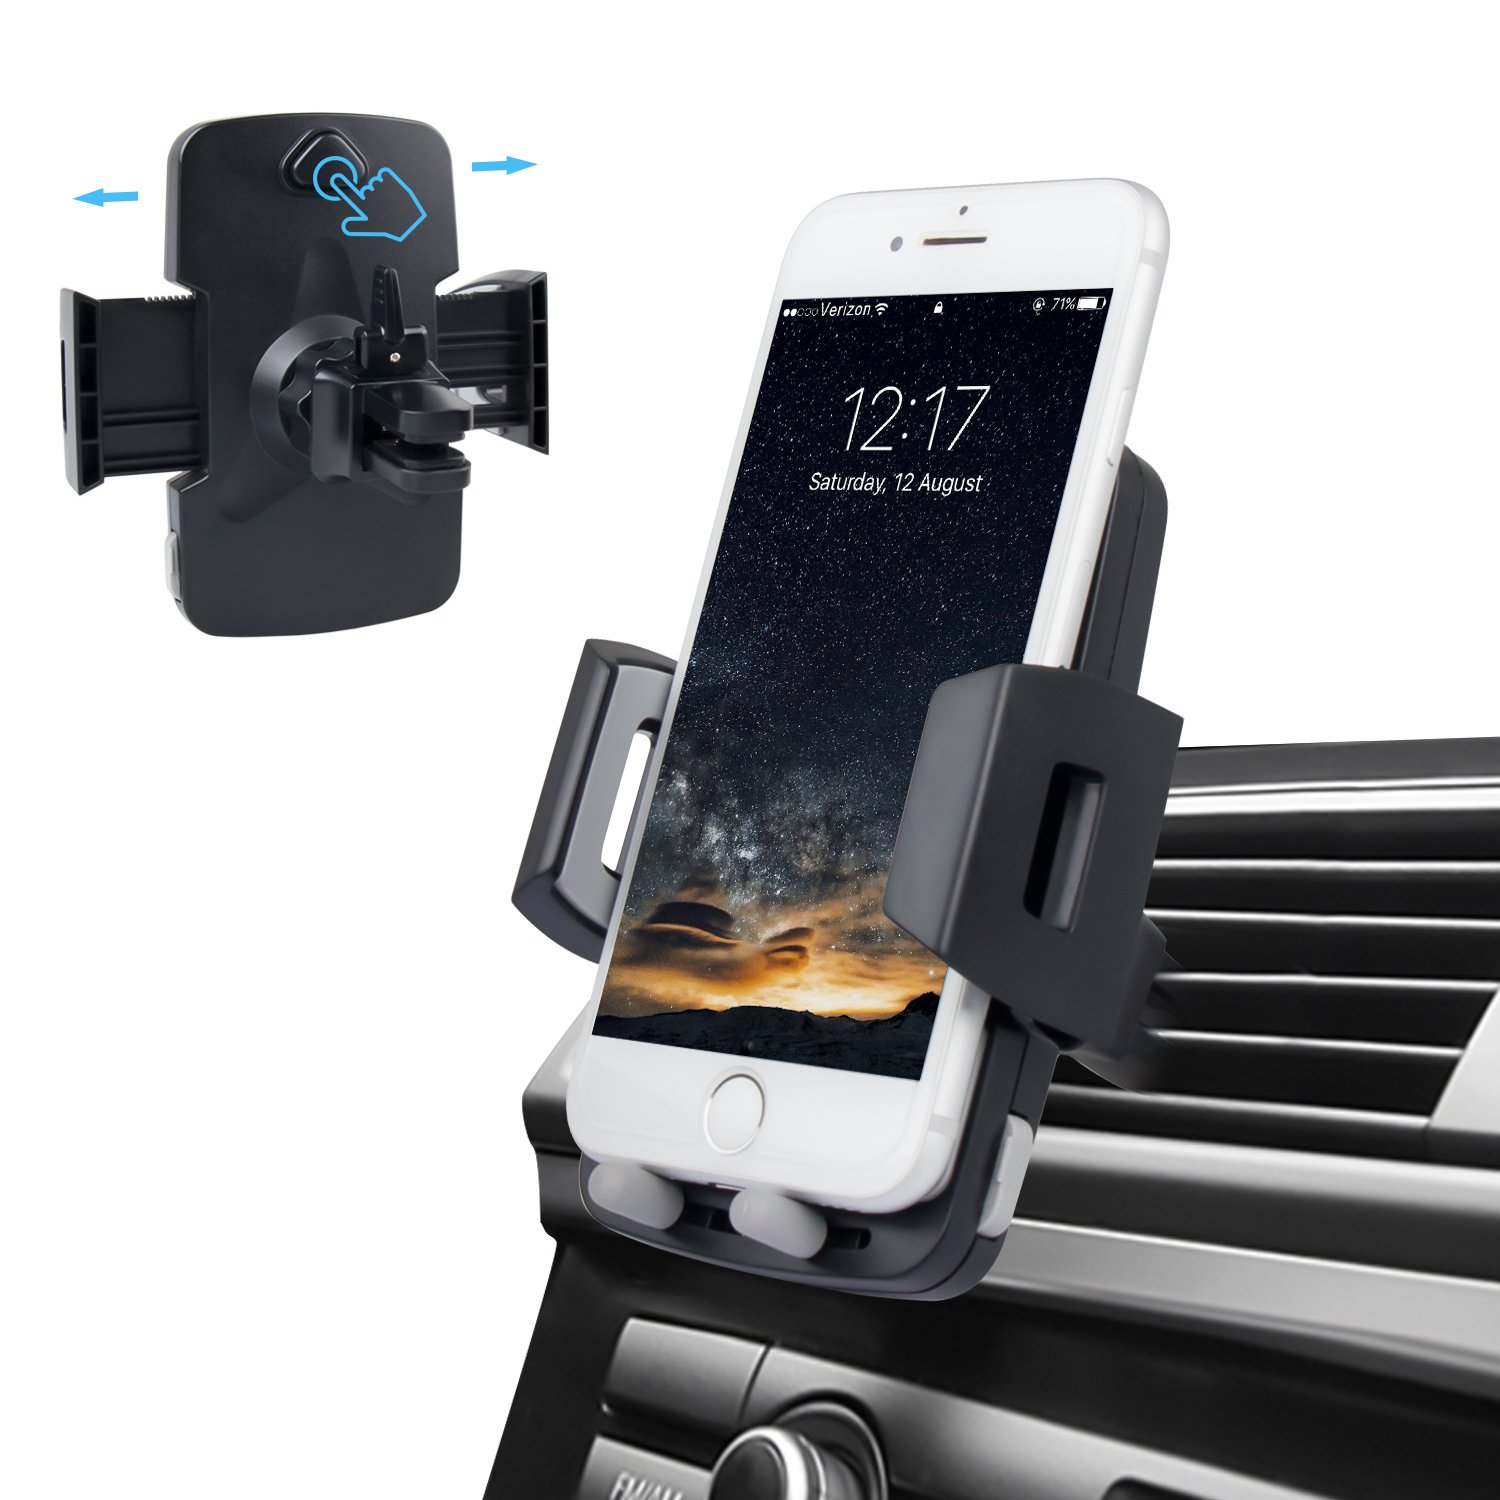 LUXEAR Air Vent Car Phone Holder Universal Phone Car Holder with 360 Rotation and Quick Release Button for iPhone 7 7 Plus 6s 6s Plus 5s 5c Samsung Galaxy S7 LG Sony and More